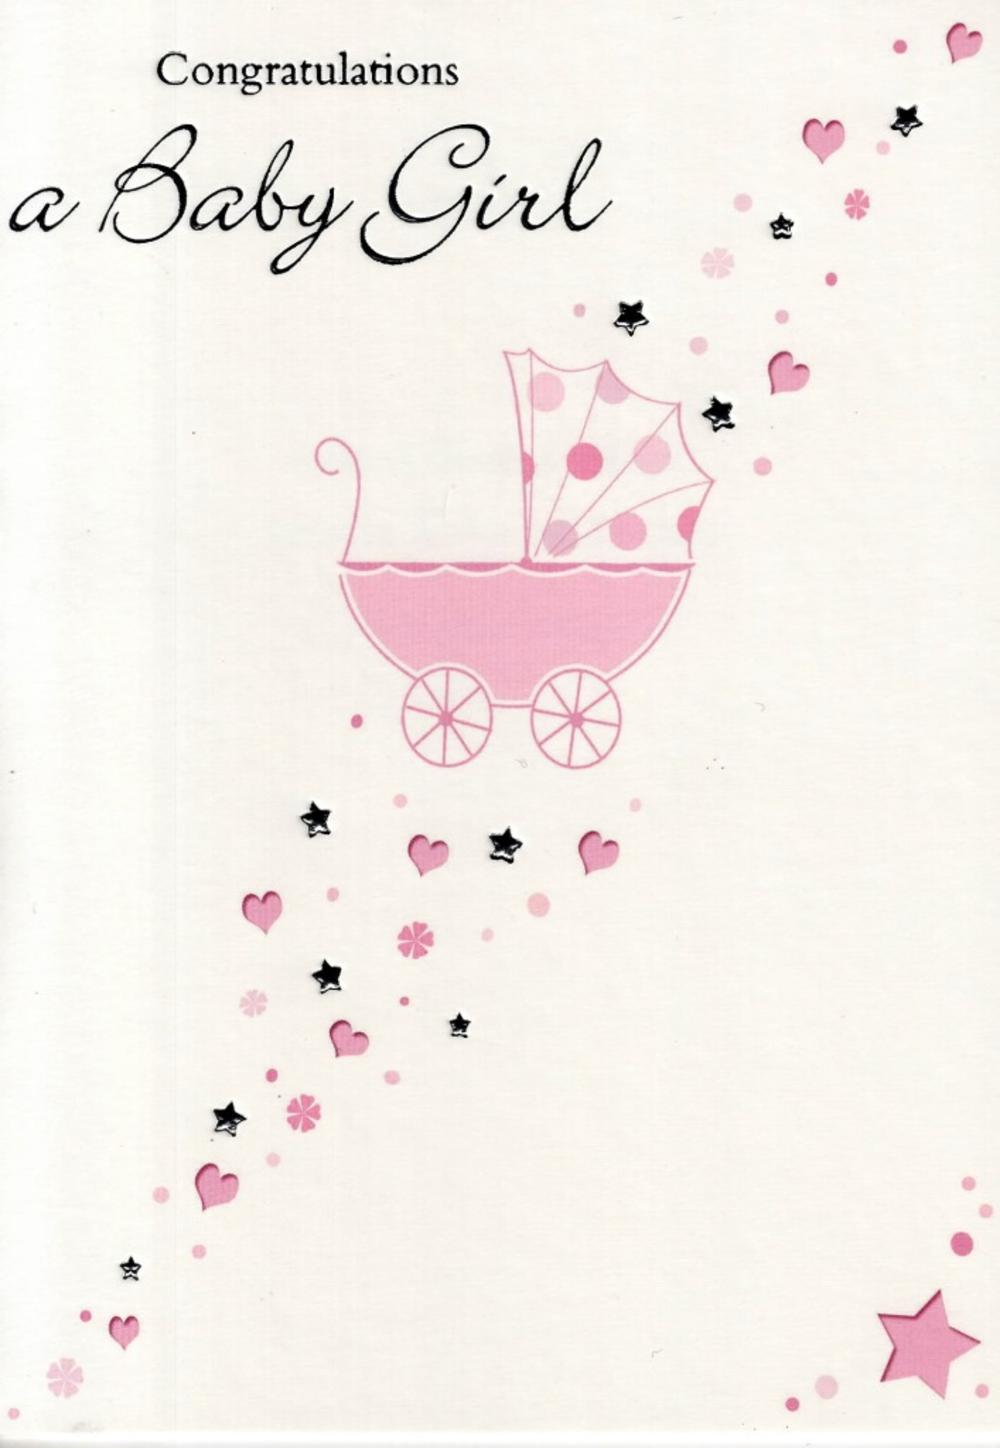 Congratulation card for baby girl yolarnetonic congratulations a new baby girl greeting card cards love kates m4hsunfo